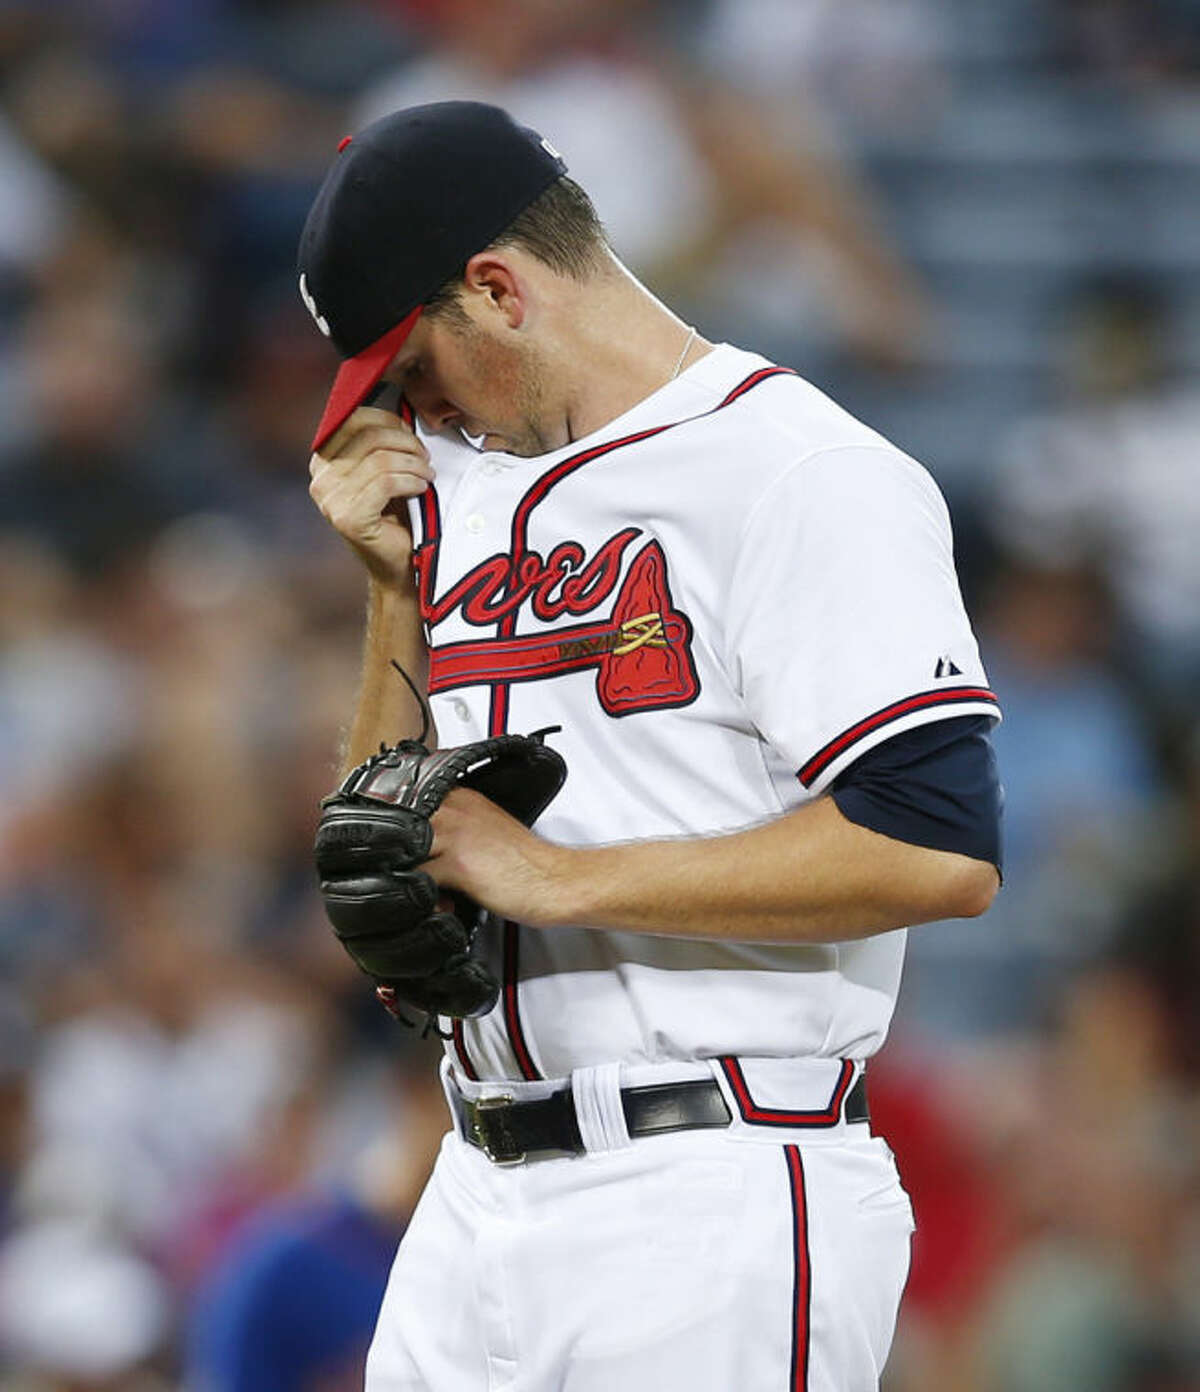 Atlanta Braves pitcher Alex Wood (40) wipes his face after loading the bases in the third inning of a baseball game against the New York Mets in Atlanta, Monday, June 30, 2014. (AP Photo/John Bazemore)